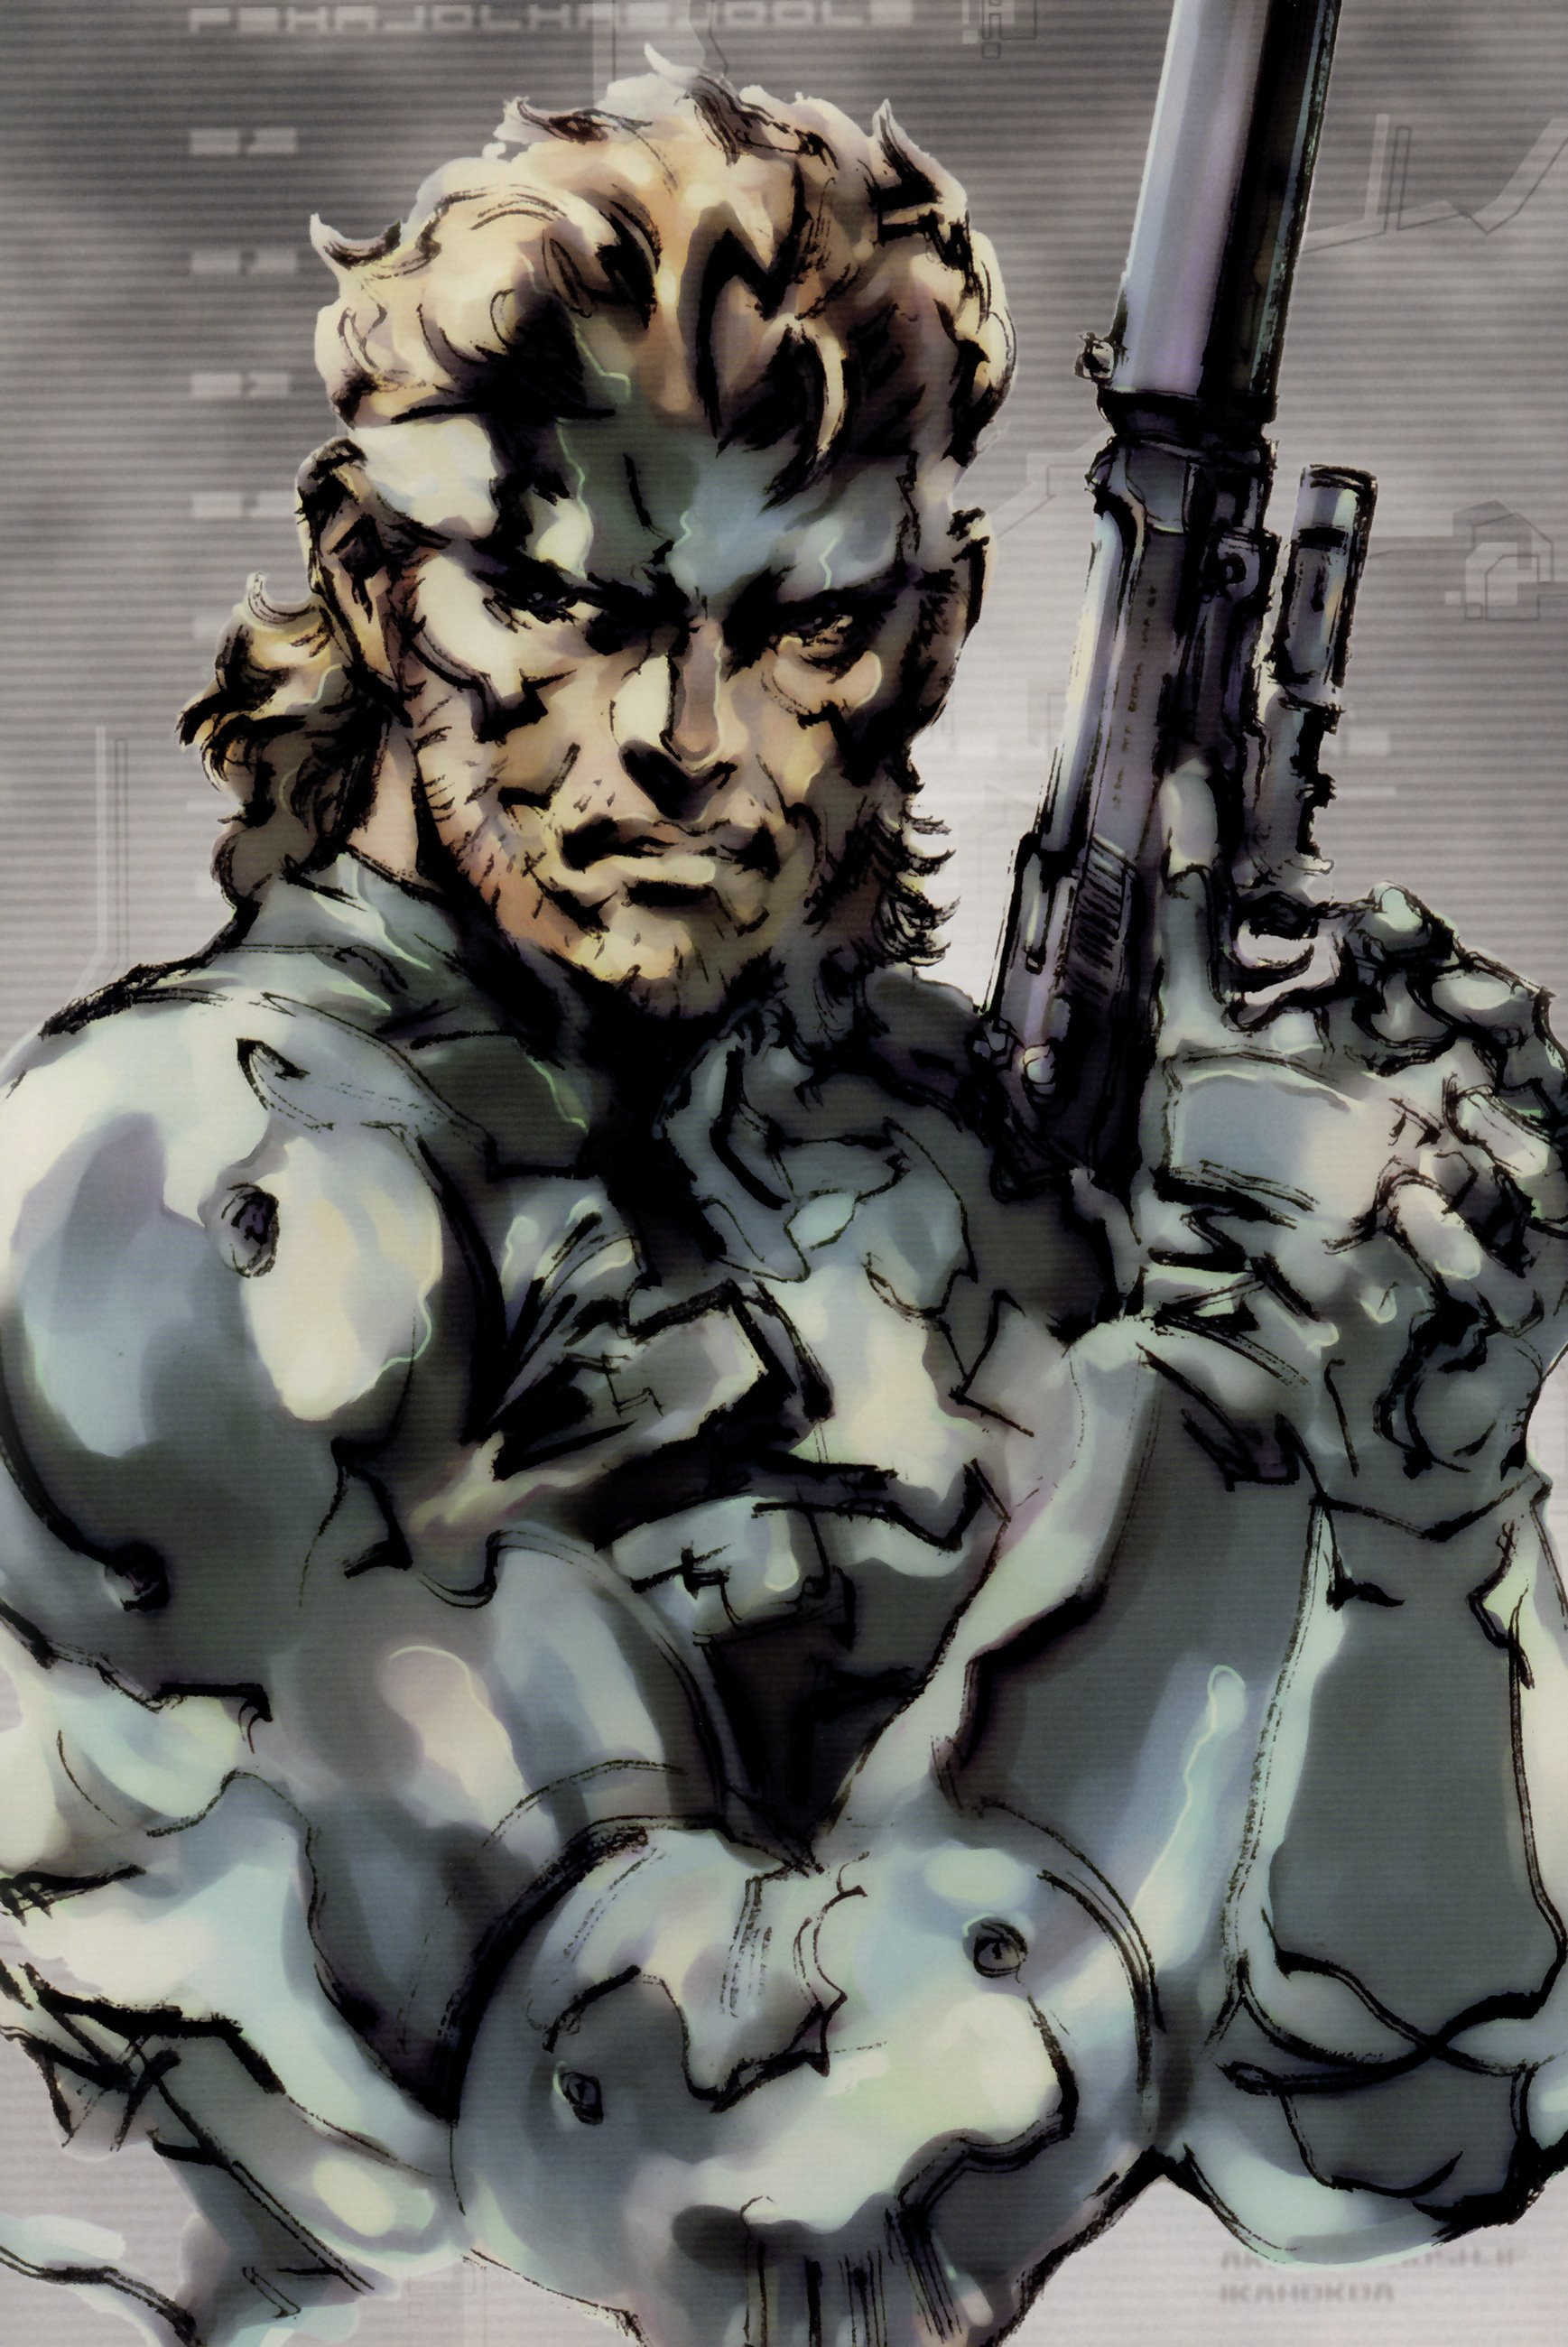 Metal Gear Solid Wallpaper Android | goodpict1st org